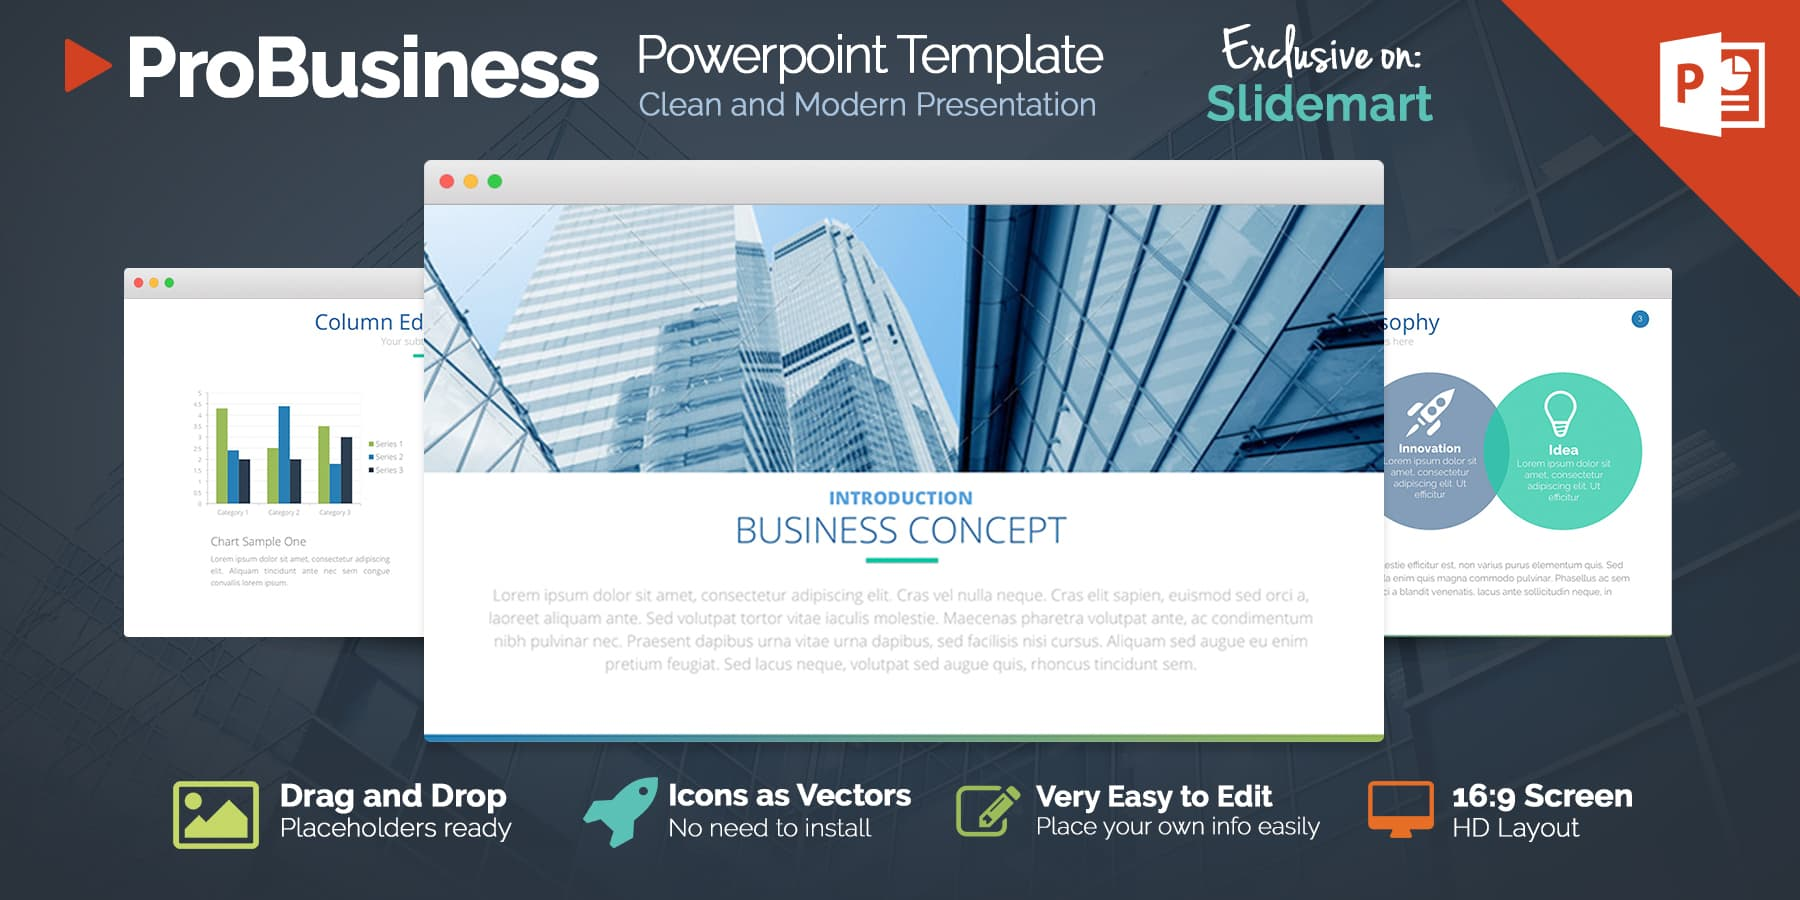 Powerpoint templates for business presentation free toneelgroepblik Image collections